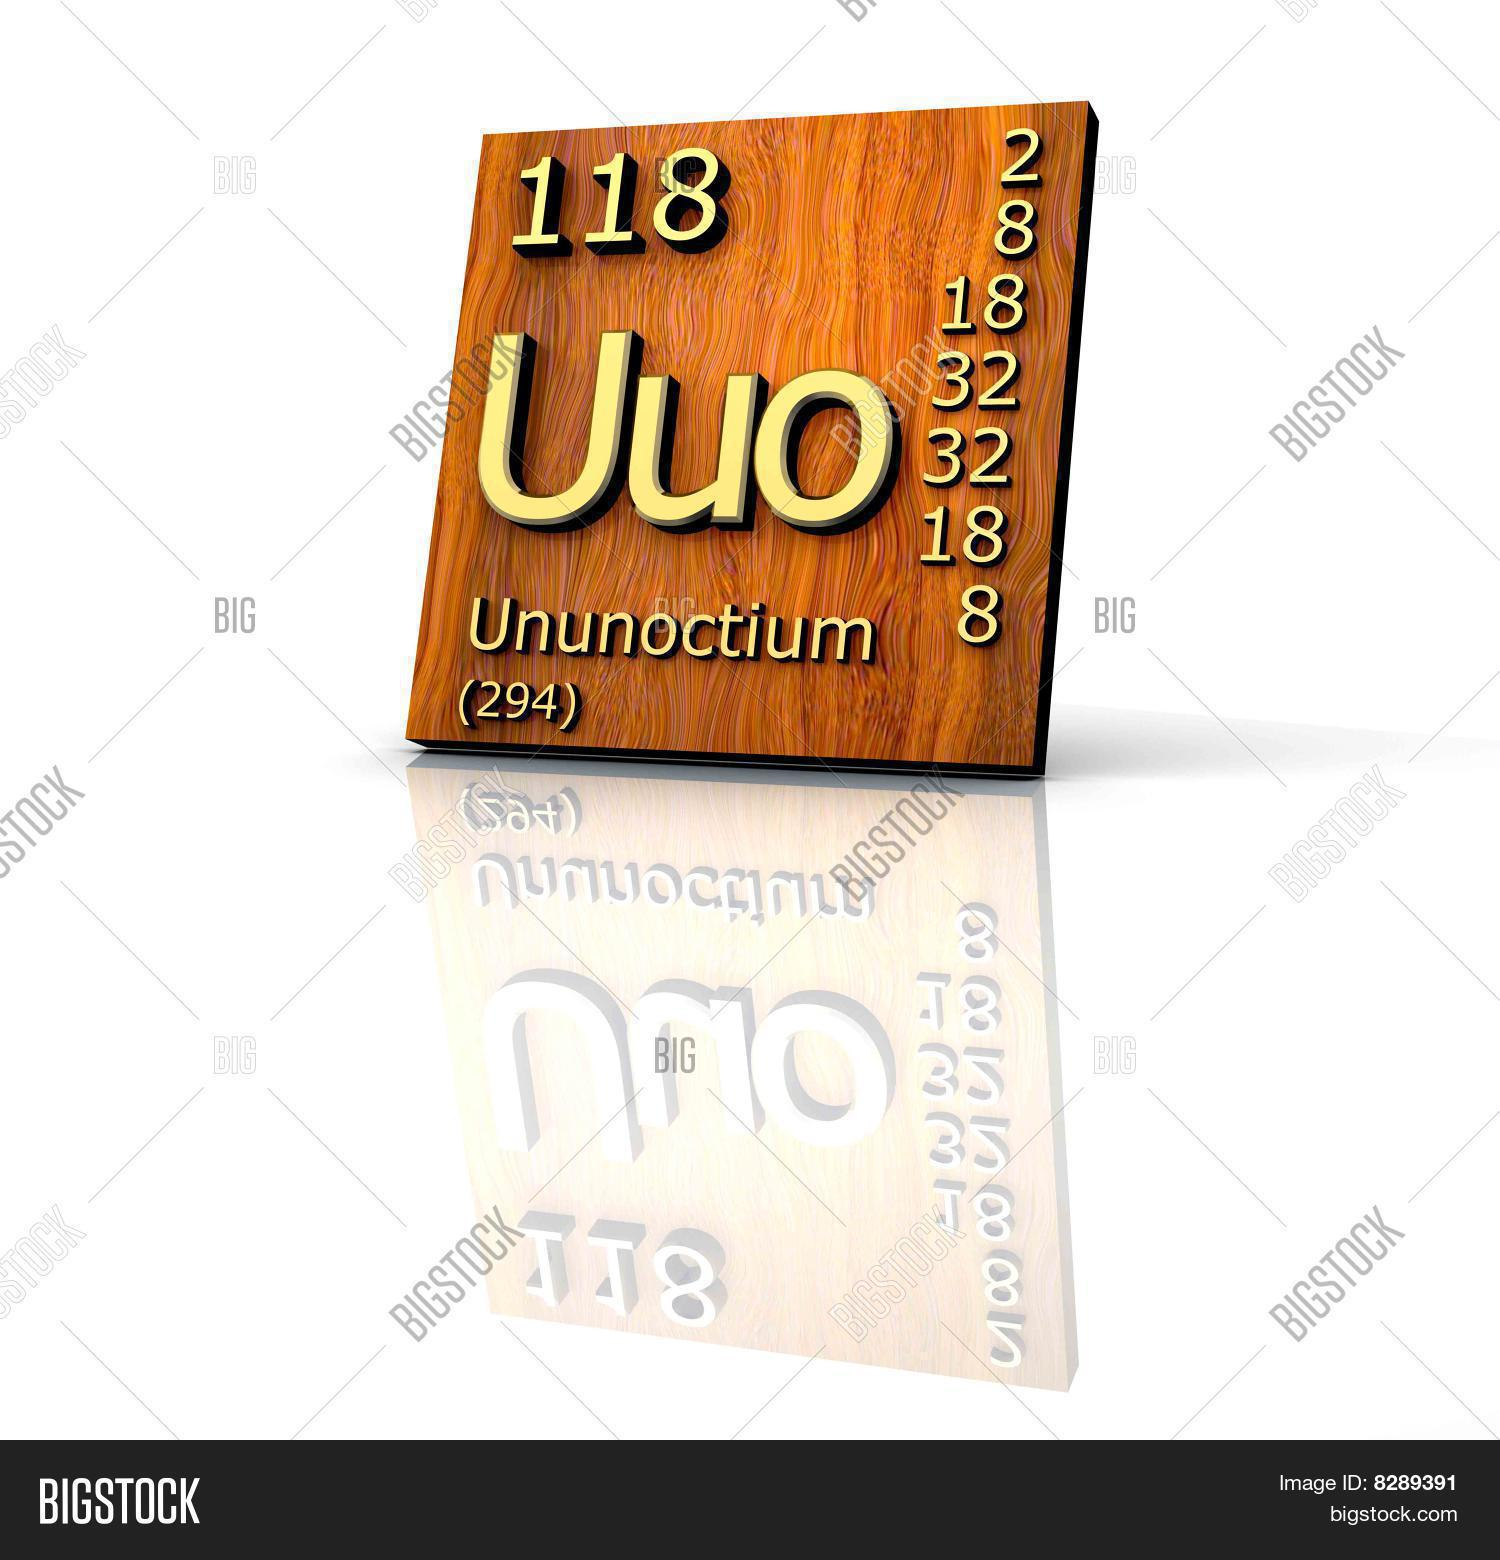 Ununoctium periodic table elements image photo bigstock ununoctium from periodic table of elements wood board urtaz Images